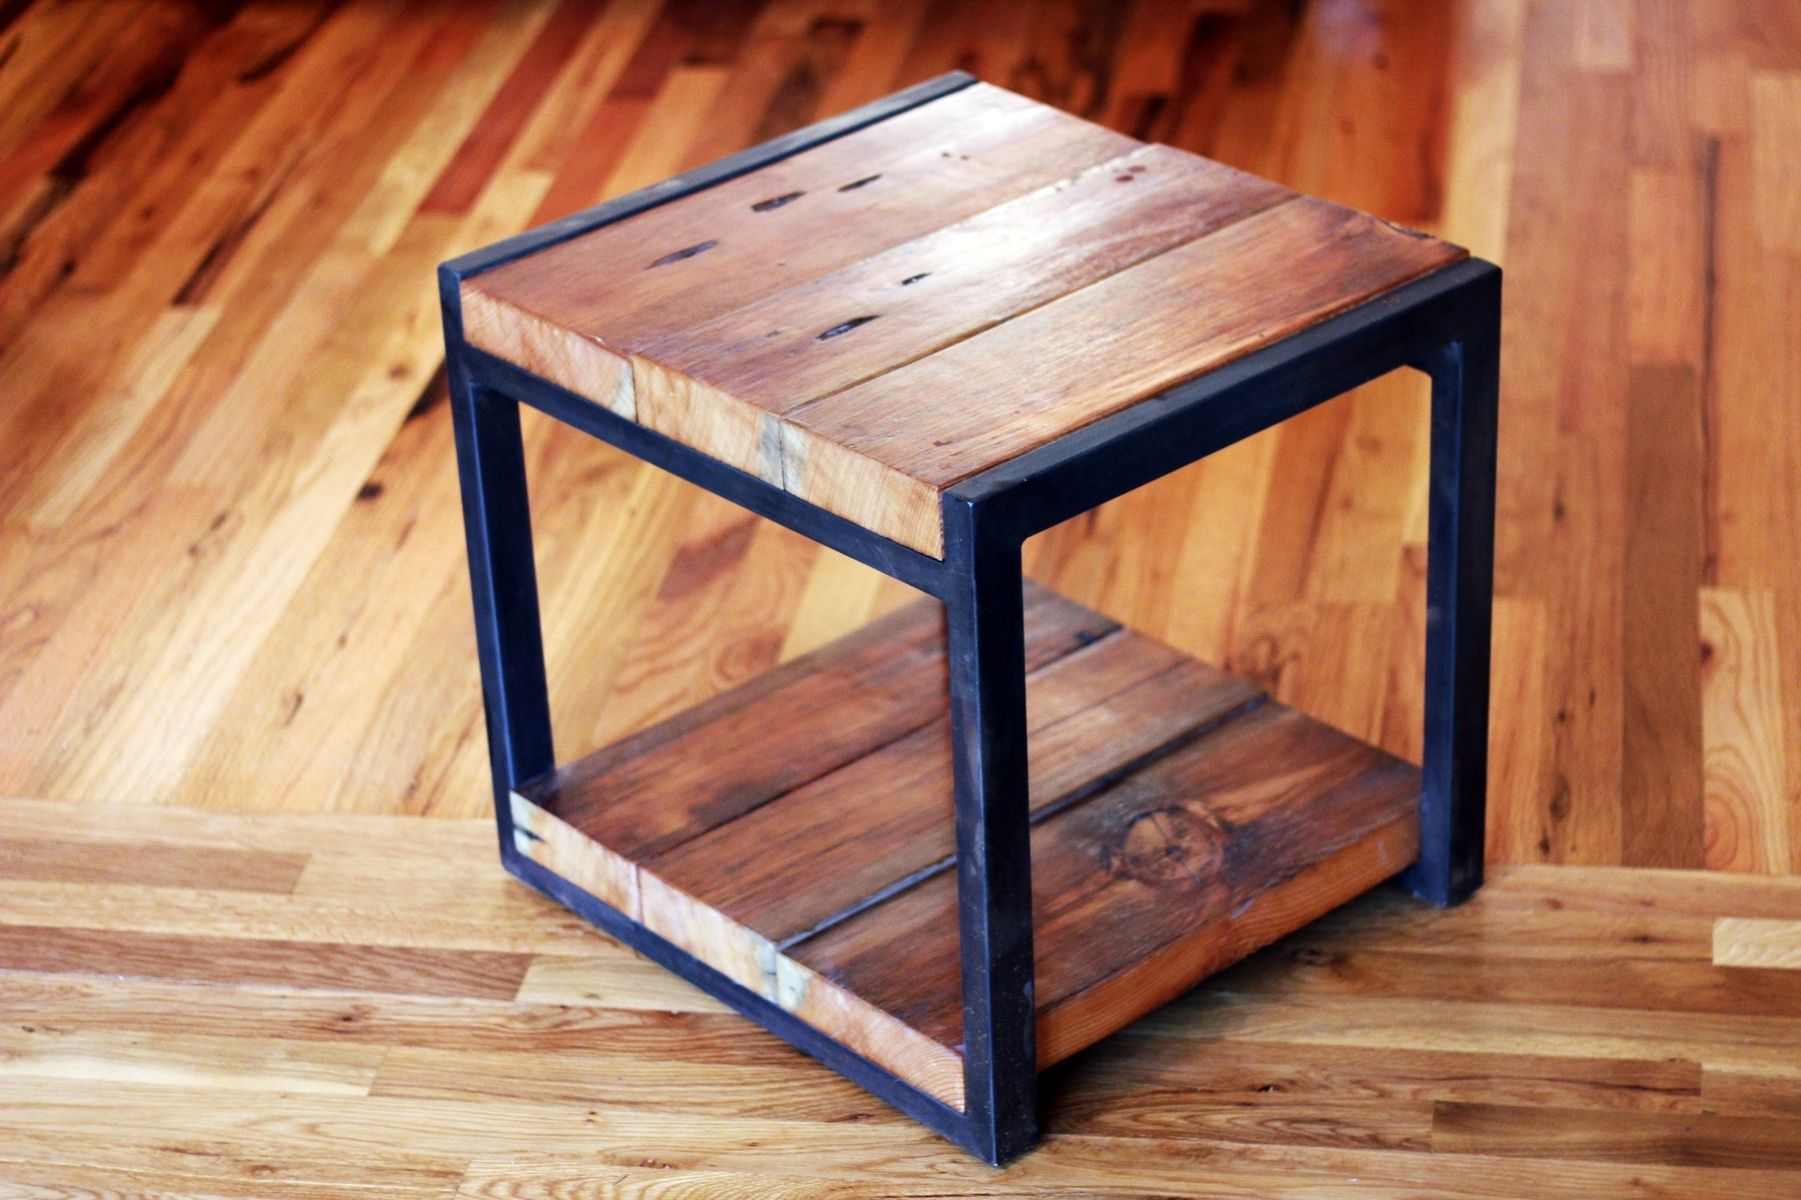 Custom Reclaimed Wood  Steel Side Table by Barreto Studios   CustomMade com. Custom Reclaimed Wood  Steel Side Table by Barreto Studios